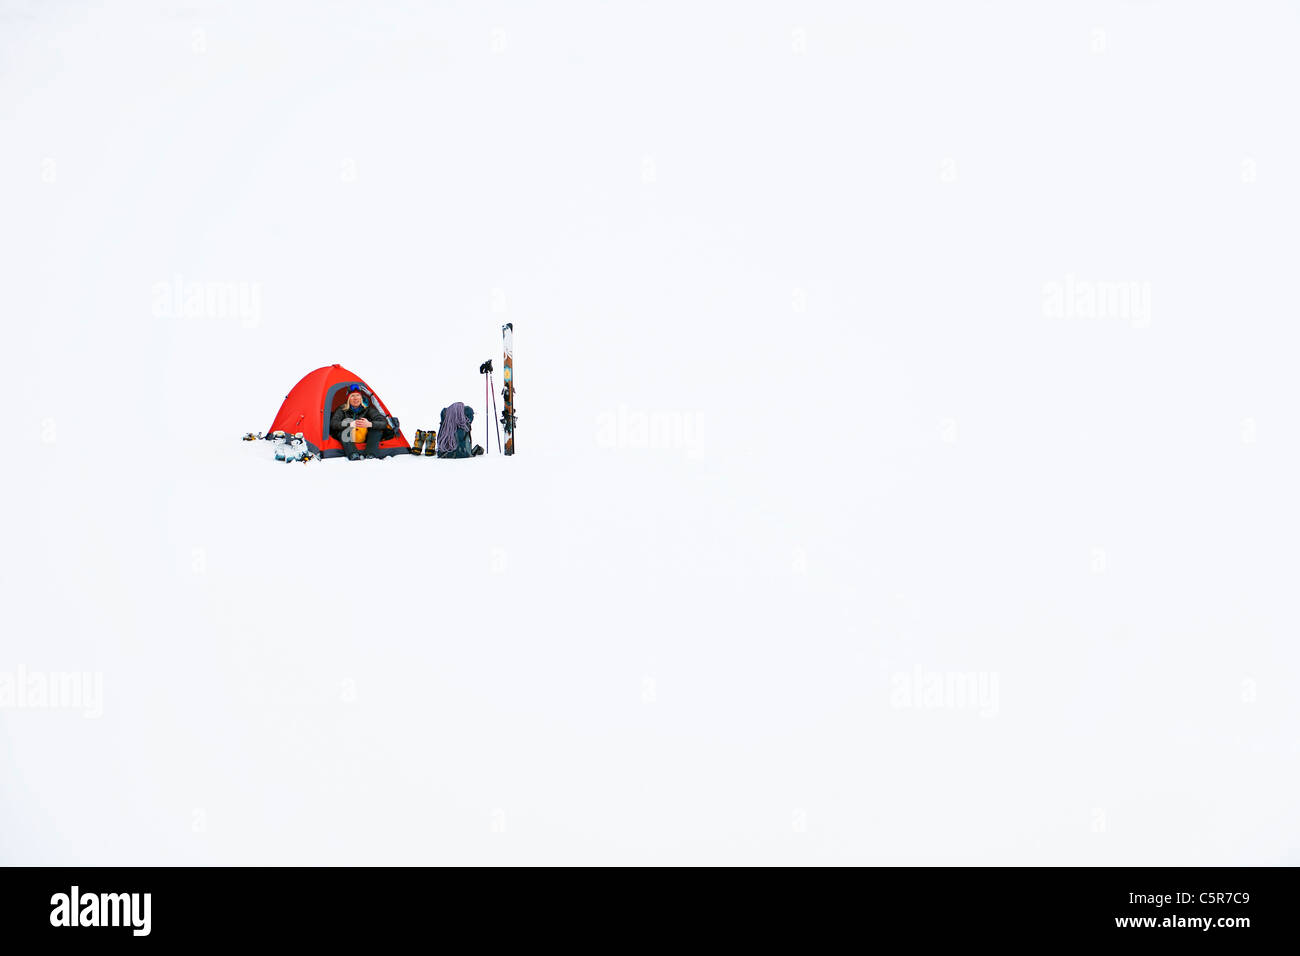 A skier camping in deep snow. - Stock Image